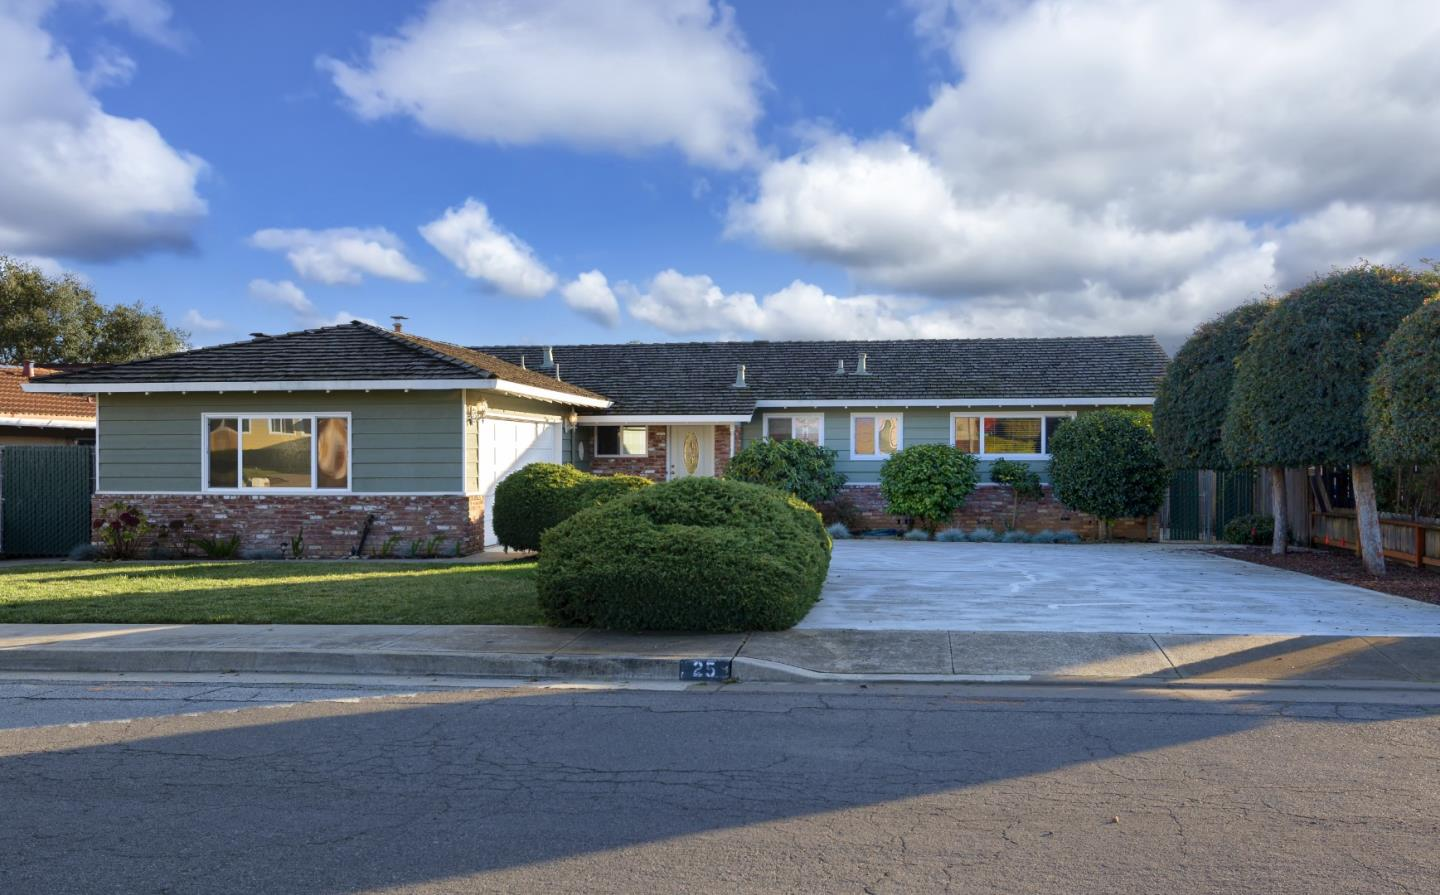 Enjoy the views of the hills in this quiet and well-established neighborhood that is nestled between Corralitos and Watsonville. This community, with its wide roads and sidewalks, is the perfect setting to raise a family, or just to enjoy peace and quiet. It's a solid move-in ready, well built home, with 3 bedrooms, 2 bathrooms. South facing in the back keeps this home bright and warm. Double pane windows throughout. The wood burning stove in the brick fireplace with gas starter is perfect for cozy nights. The french doors from the living room lead to the large backyard with two apple trees, a built in bbq w/sink, & a covered patio. It's a perfect setting for entertaining. It has a double car garage and lots of parking on the driveway for guests. Underground utilities! Great schools for the kids (Bradley Elem, Aptos JH and Aptos HS). Homes in this neighborhood rarely become available for sale.  Take advantage of this great opportunity and make this your home for generations to come!